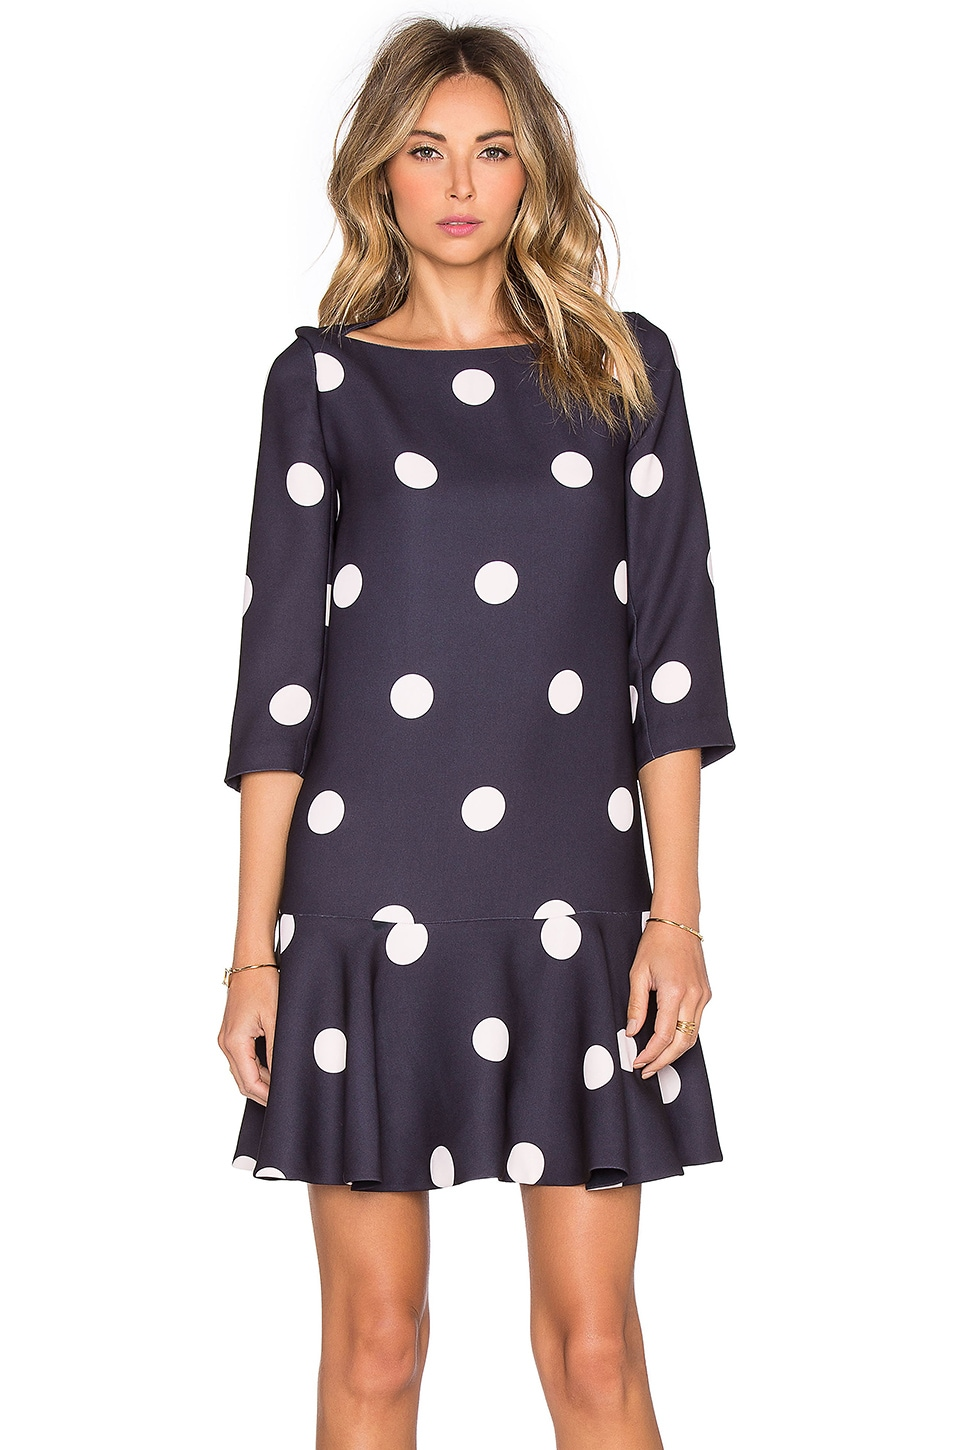 kate spade new york Spotlight Flounce Dress in Ink